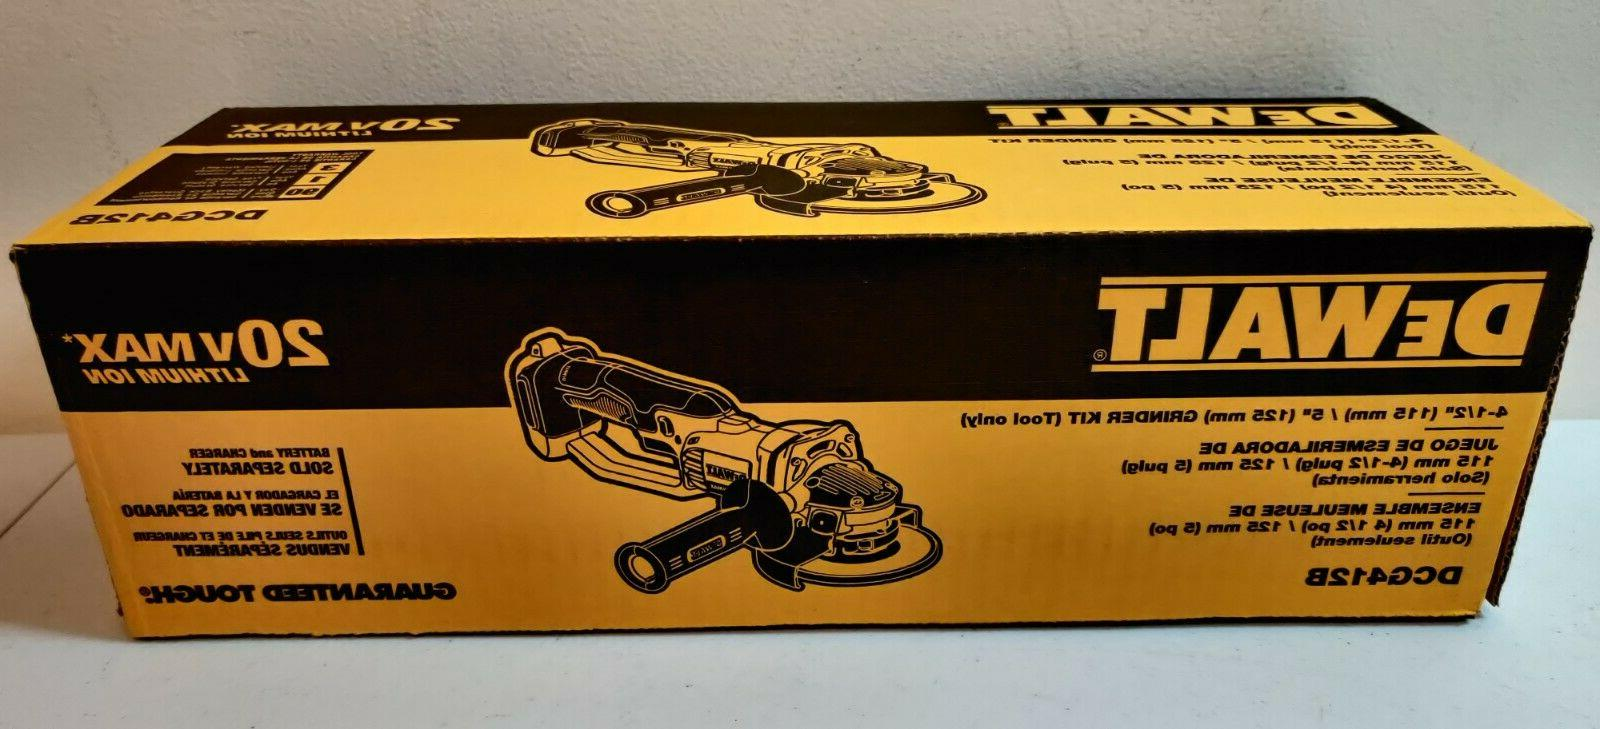 "Dewalt 20V Cordless Battery Angle Grinder 1/2"" Volt Cut-Off"